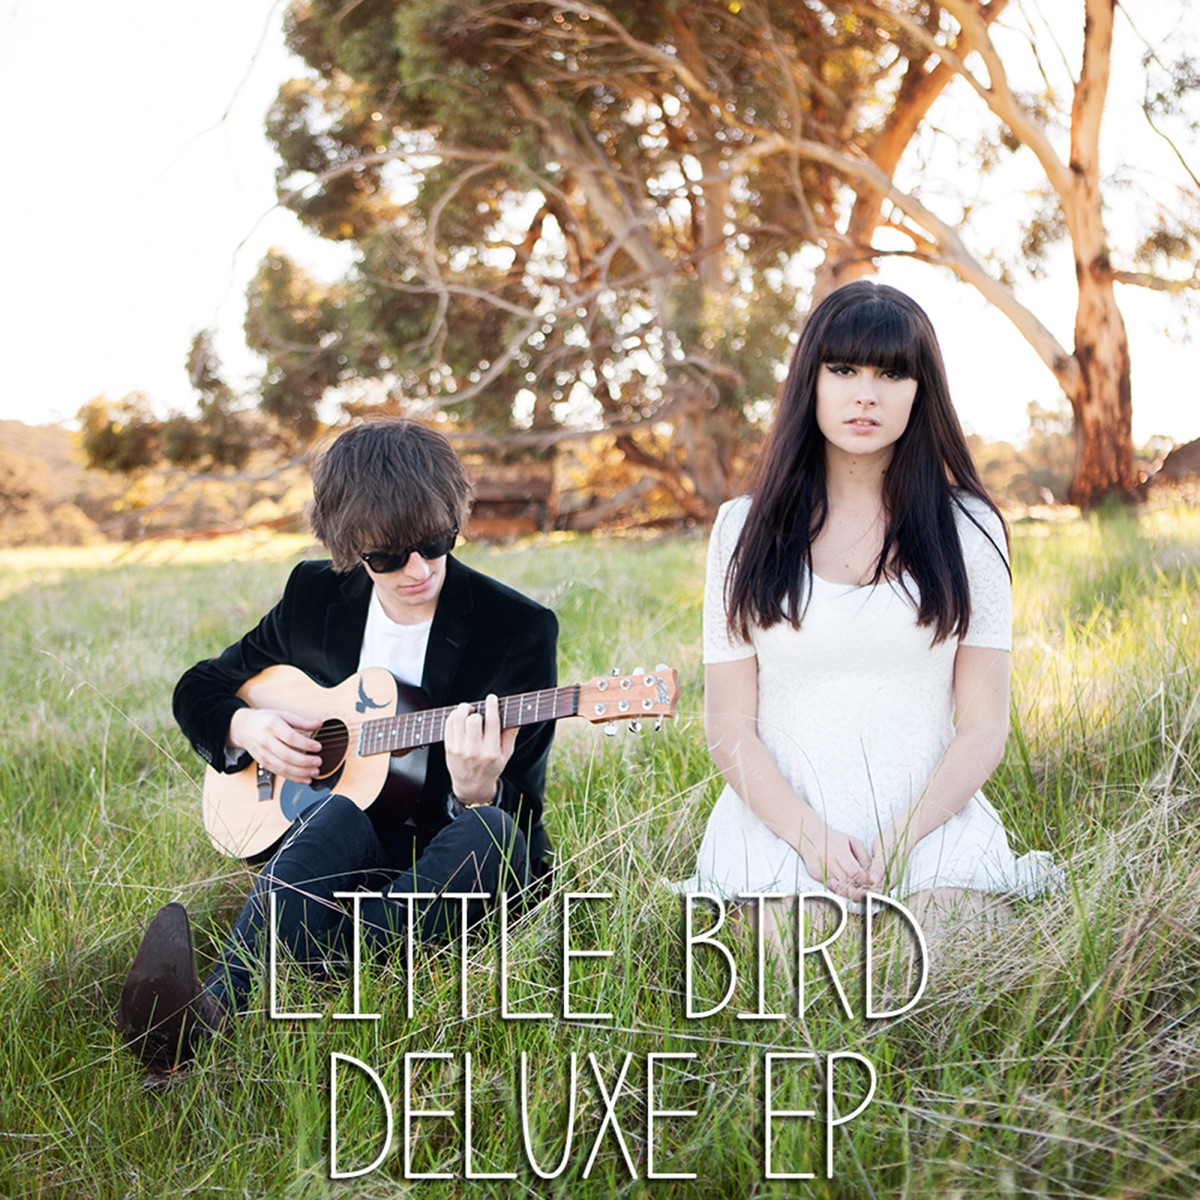 Little Bird Deluxe Little Bird CD cover